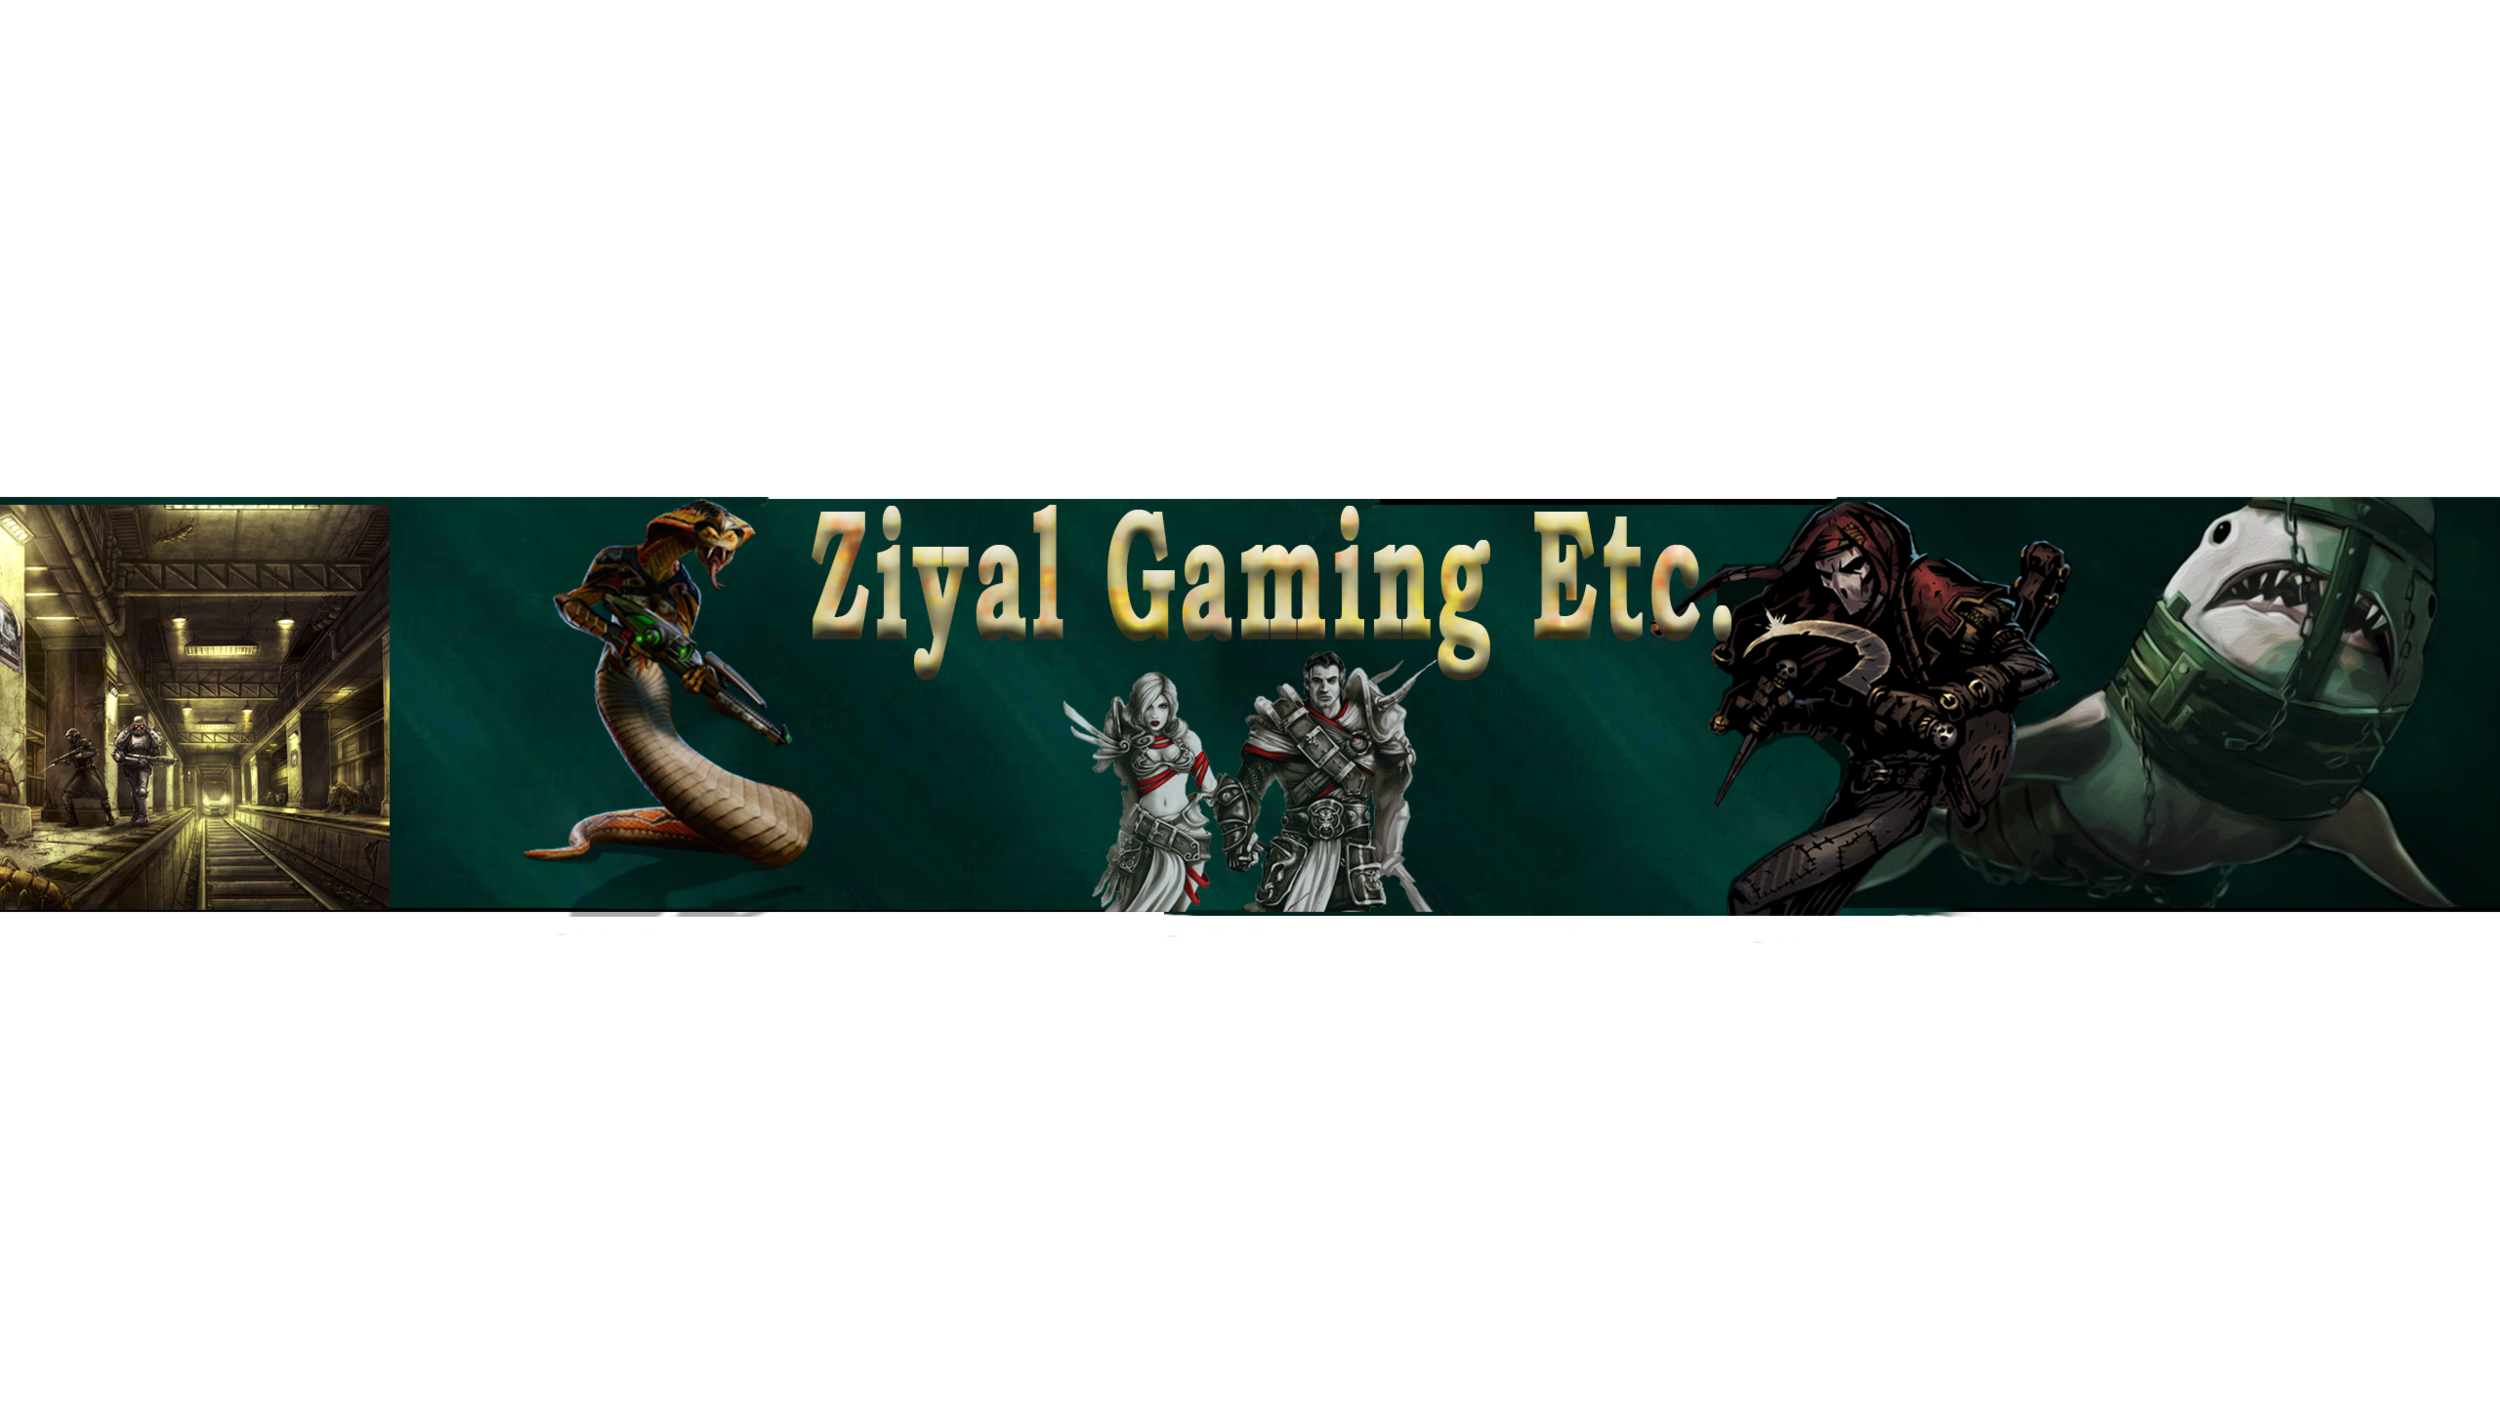 My Channel art banner.  Click thru to reach the channel and say hello if you like.